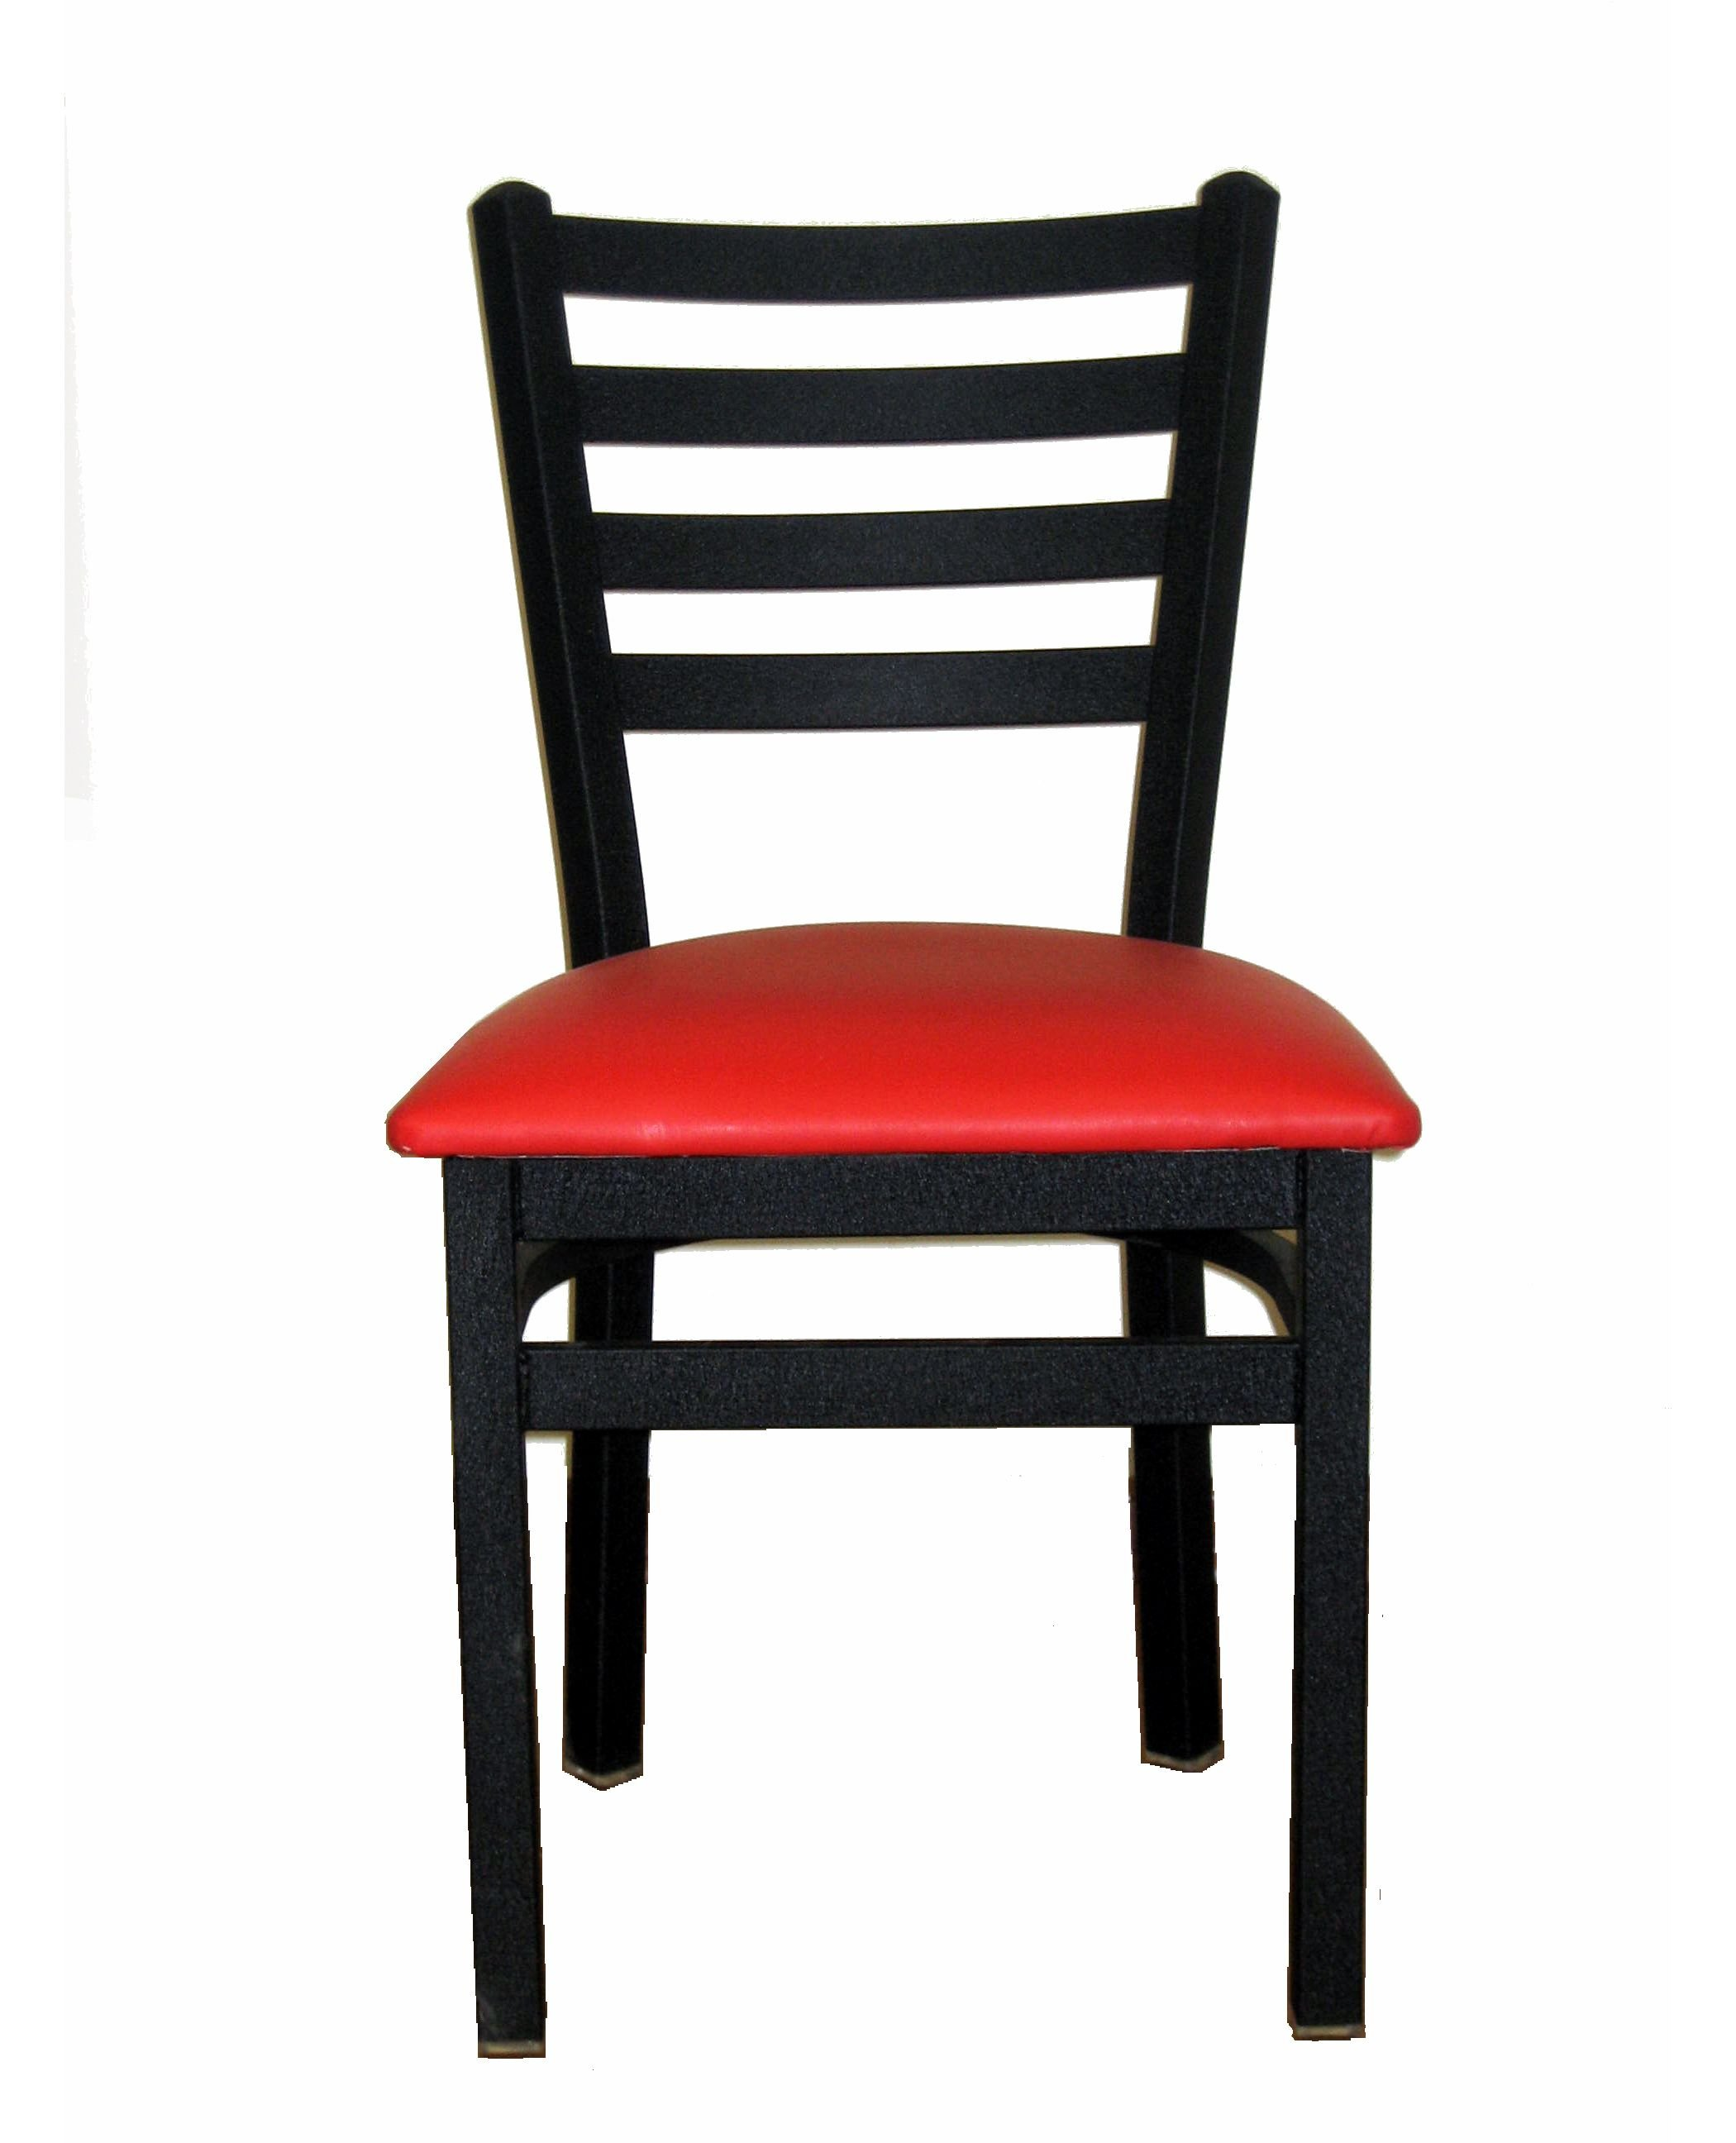 C bfm seating lima metal restaurant chairs ships from